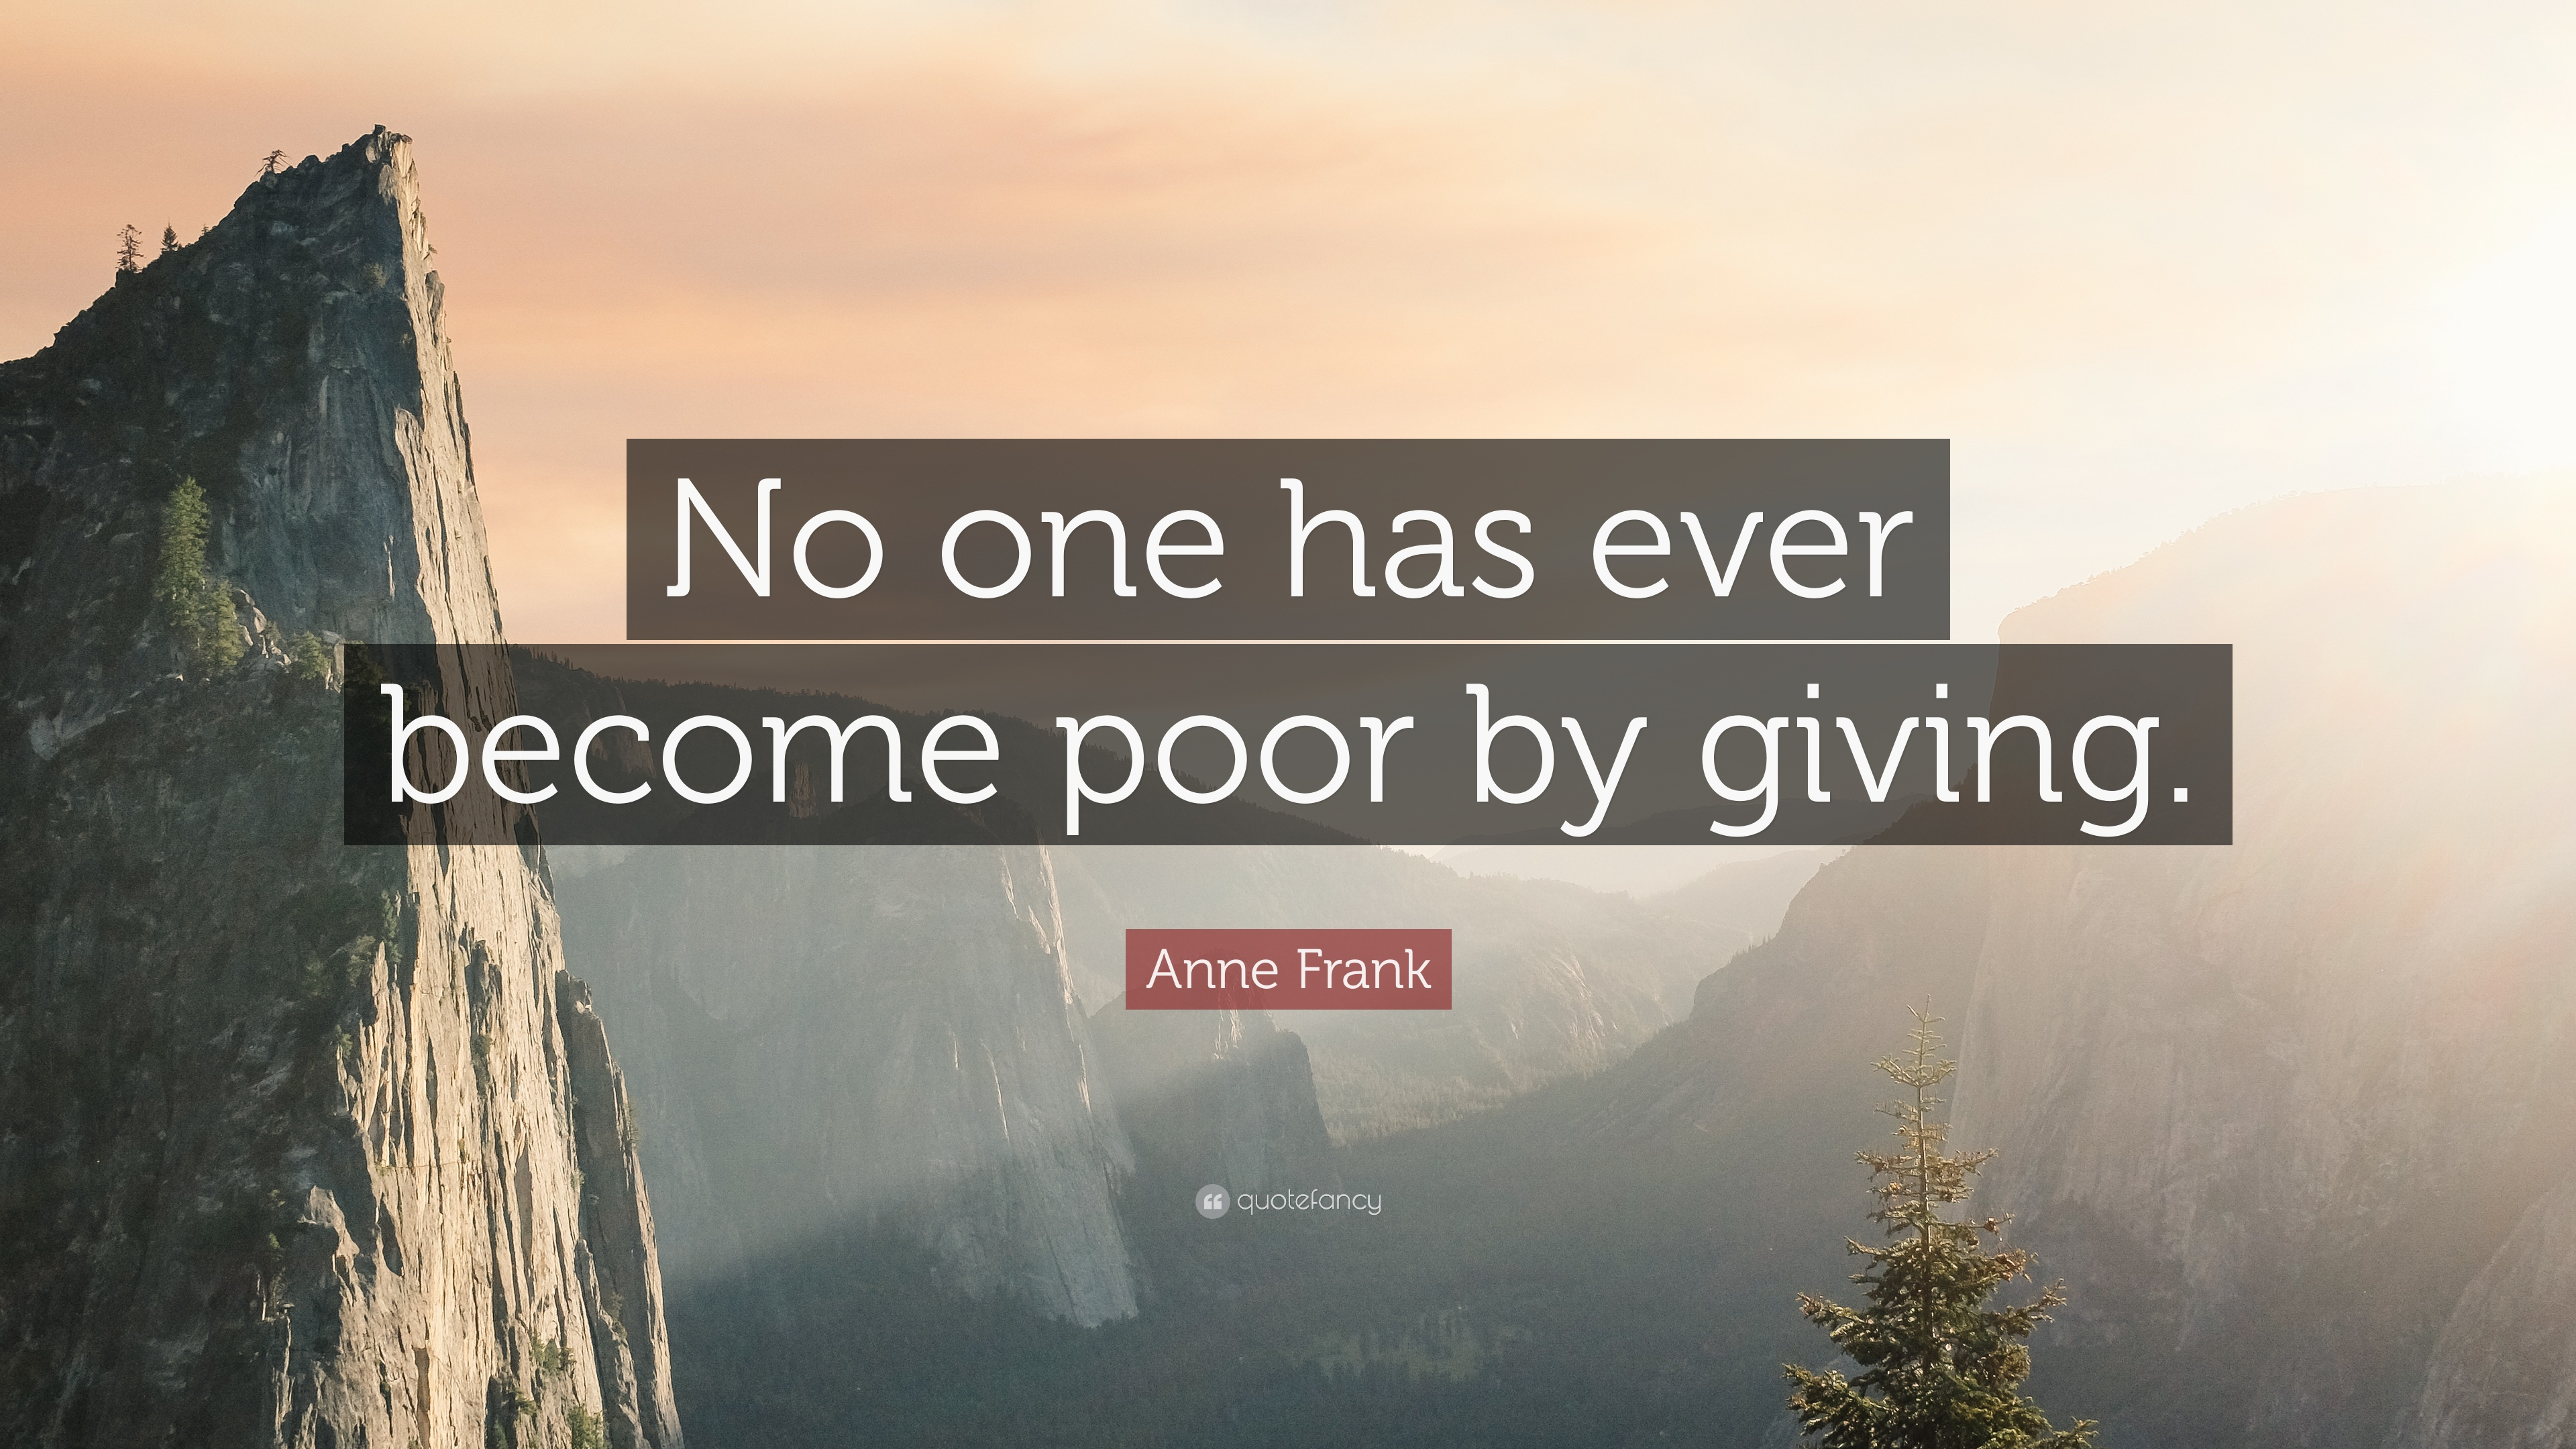 Wallpapers Philosophy Quotes Anne Frank Quote No One Has Ever Become Poor By Giving